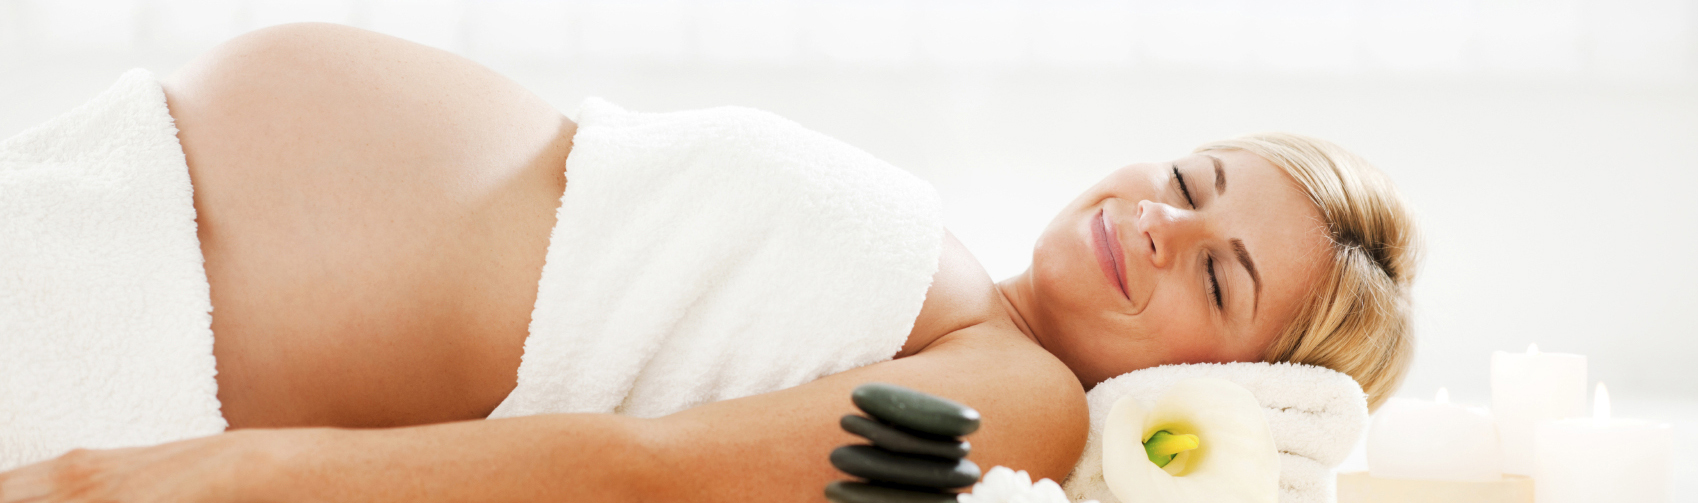 Young pregnant woman enjoying in spa treatment.